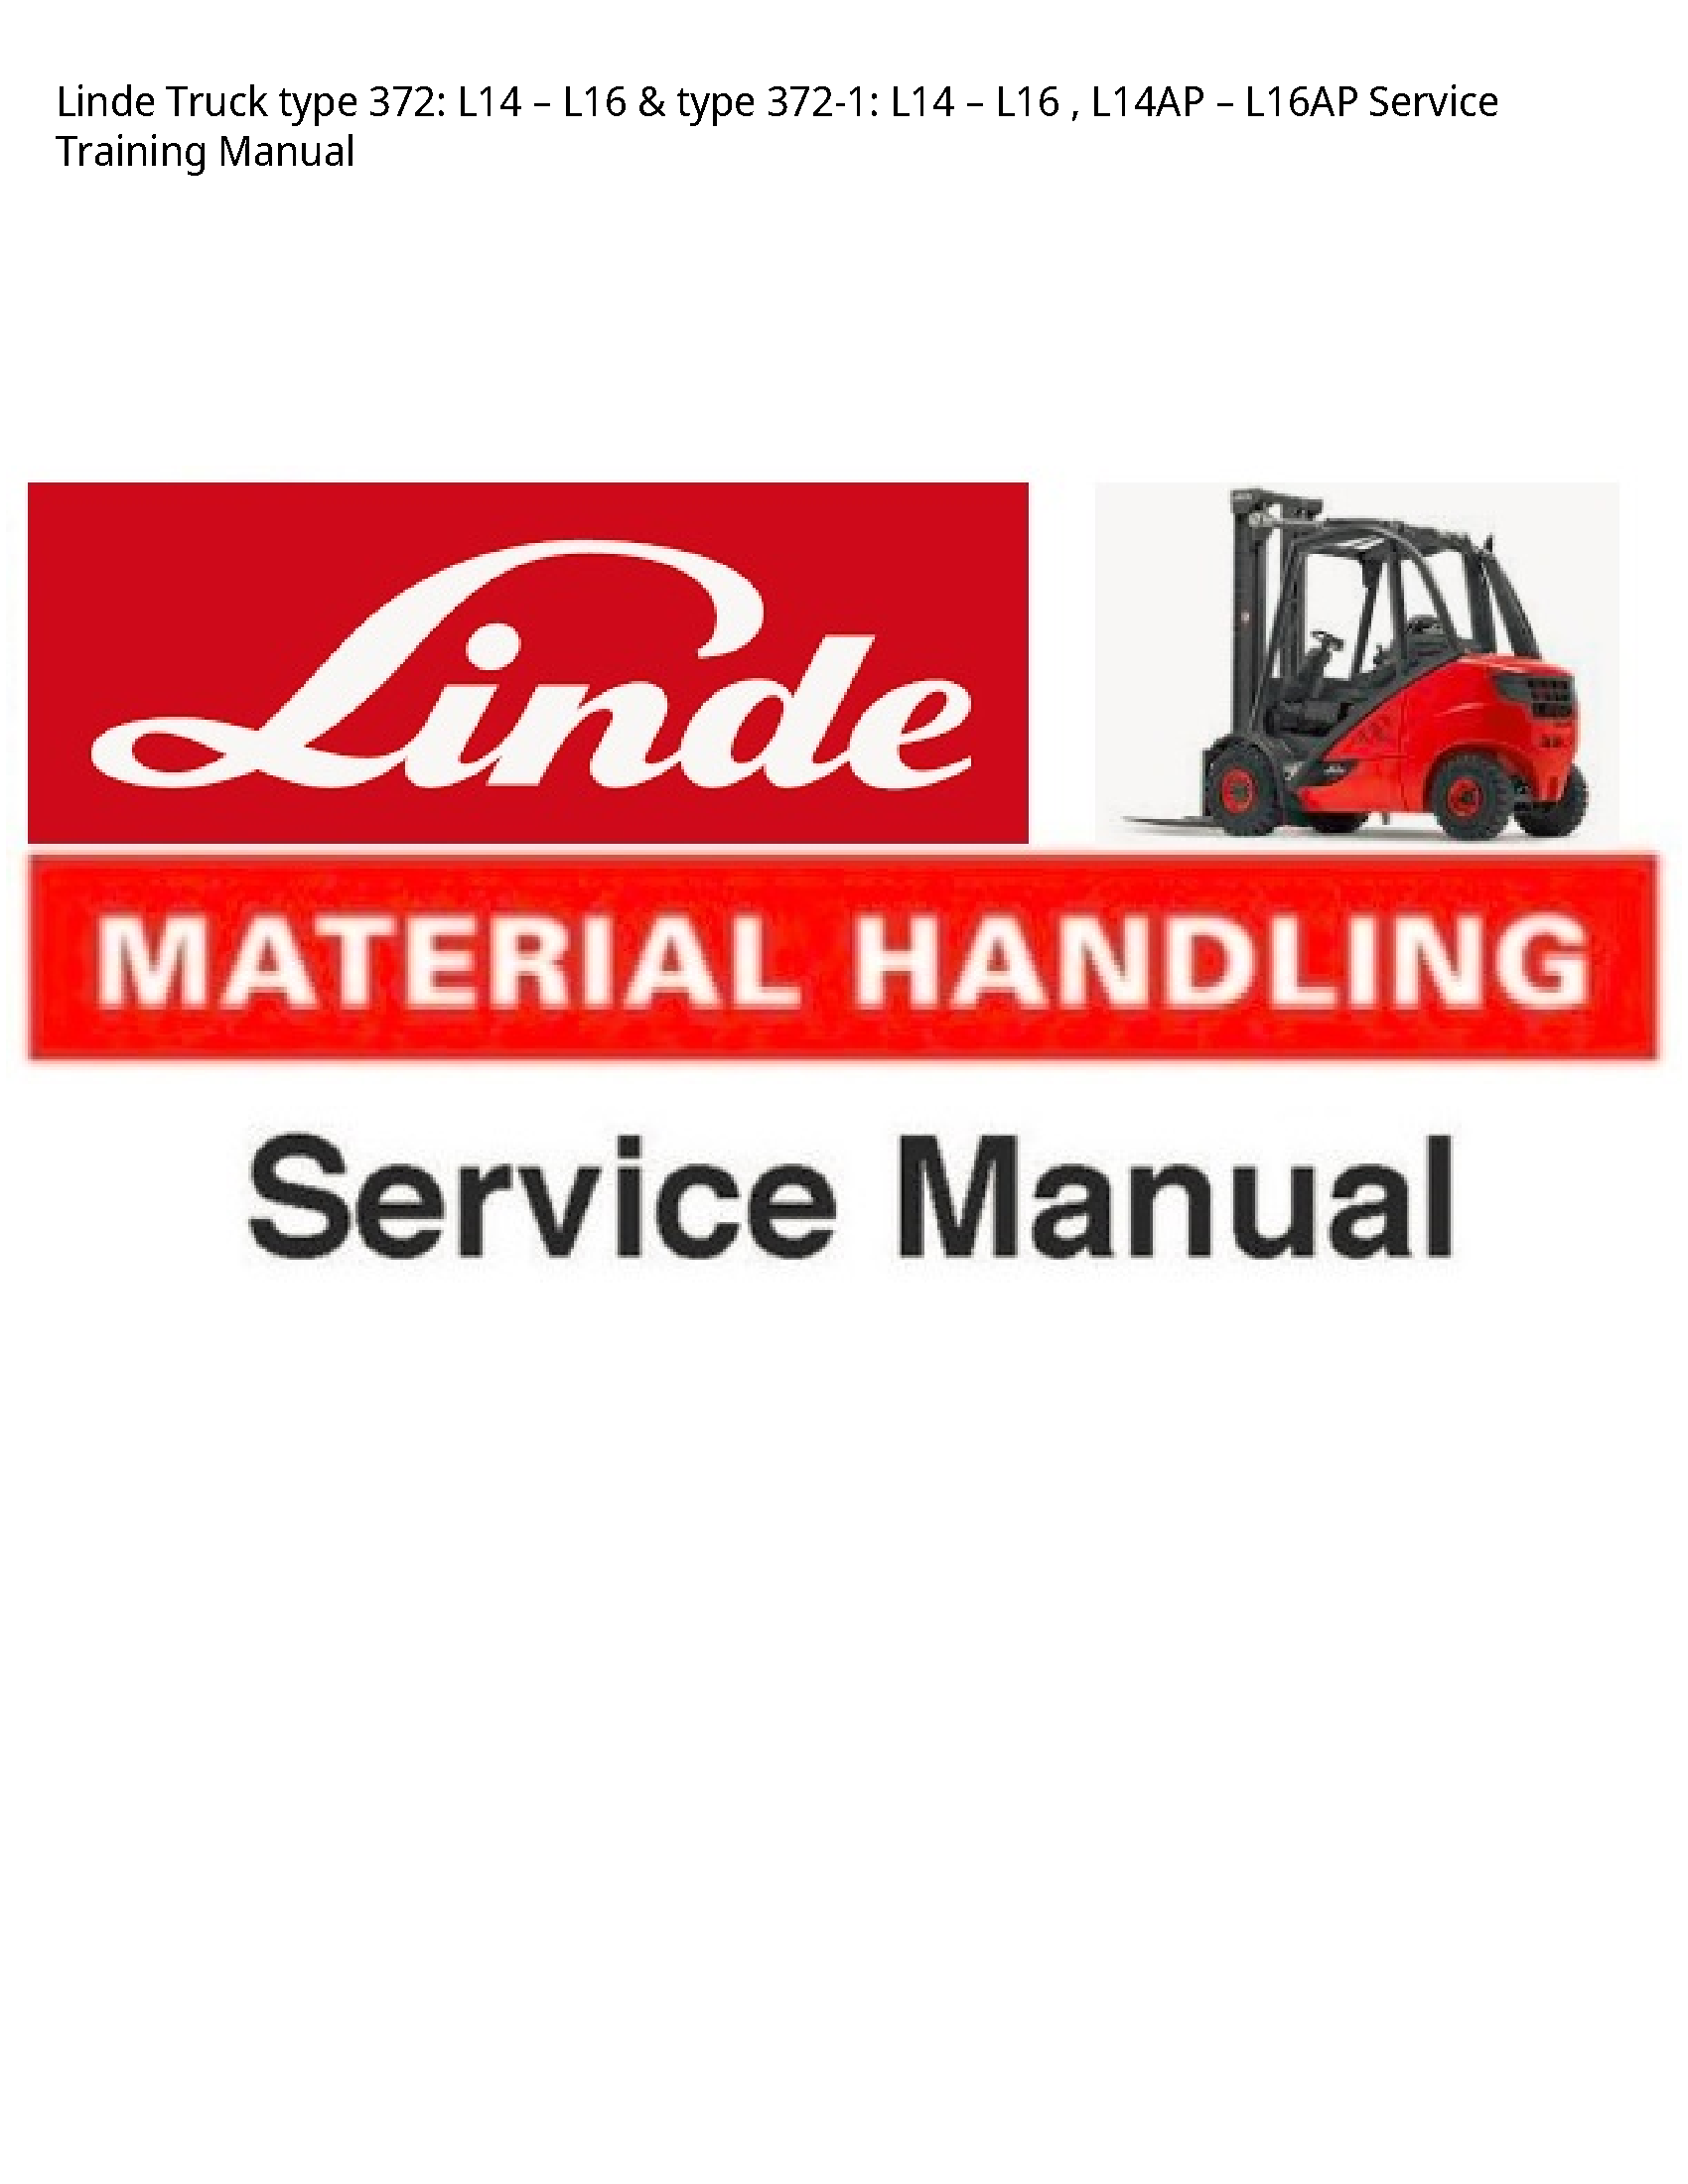 Linde 372: Truck type type Service Training manual